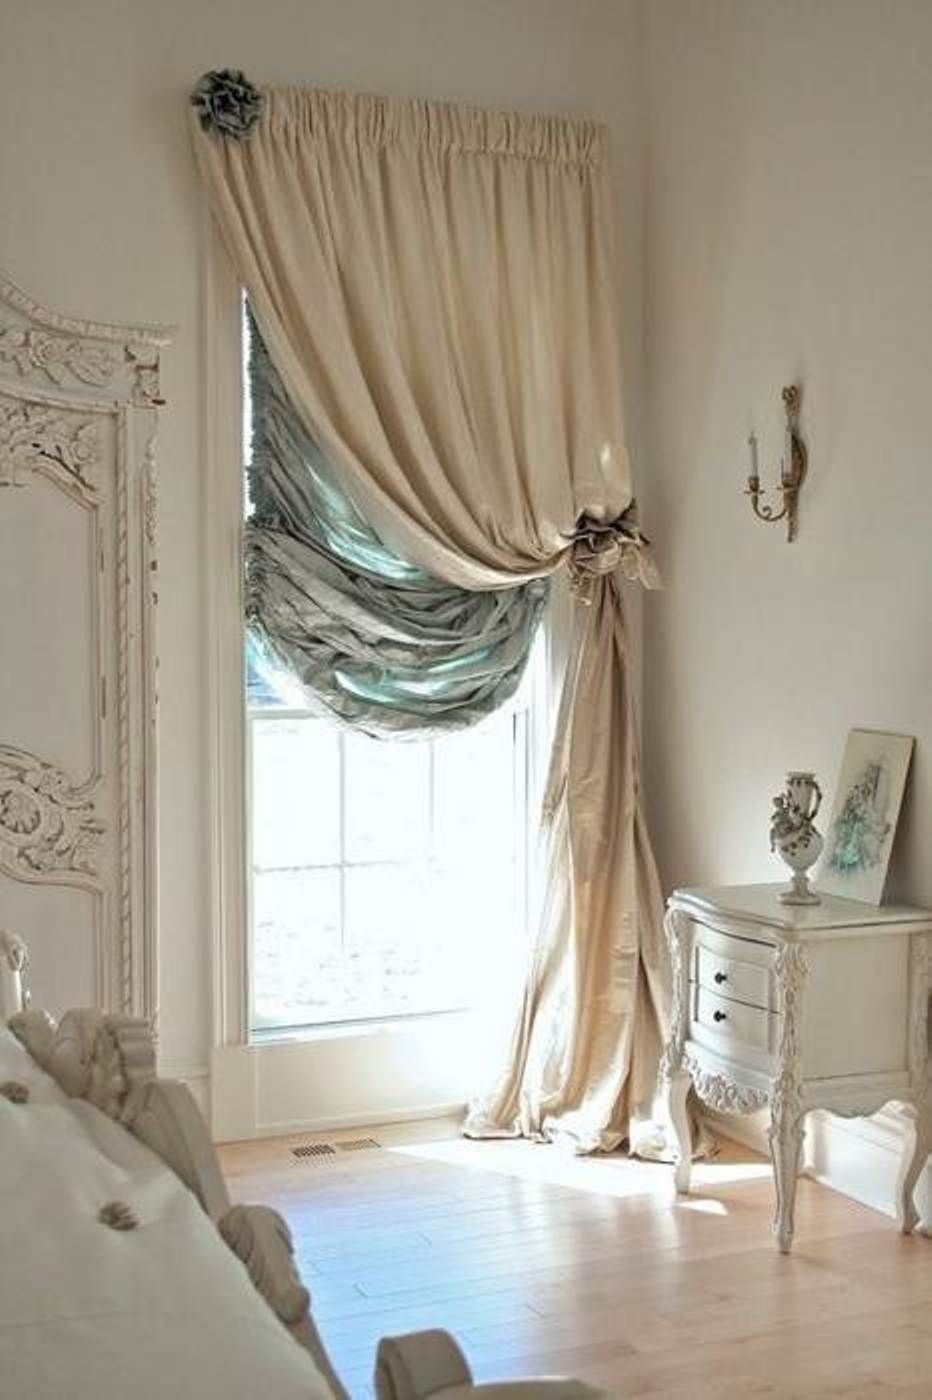 Modern curtains designs bedroom - Bedroom Curtains Ideas Drapery Ideas Great Curtain Ideas For Bedroom Better Home And Garden